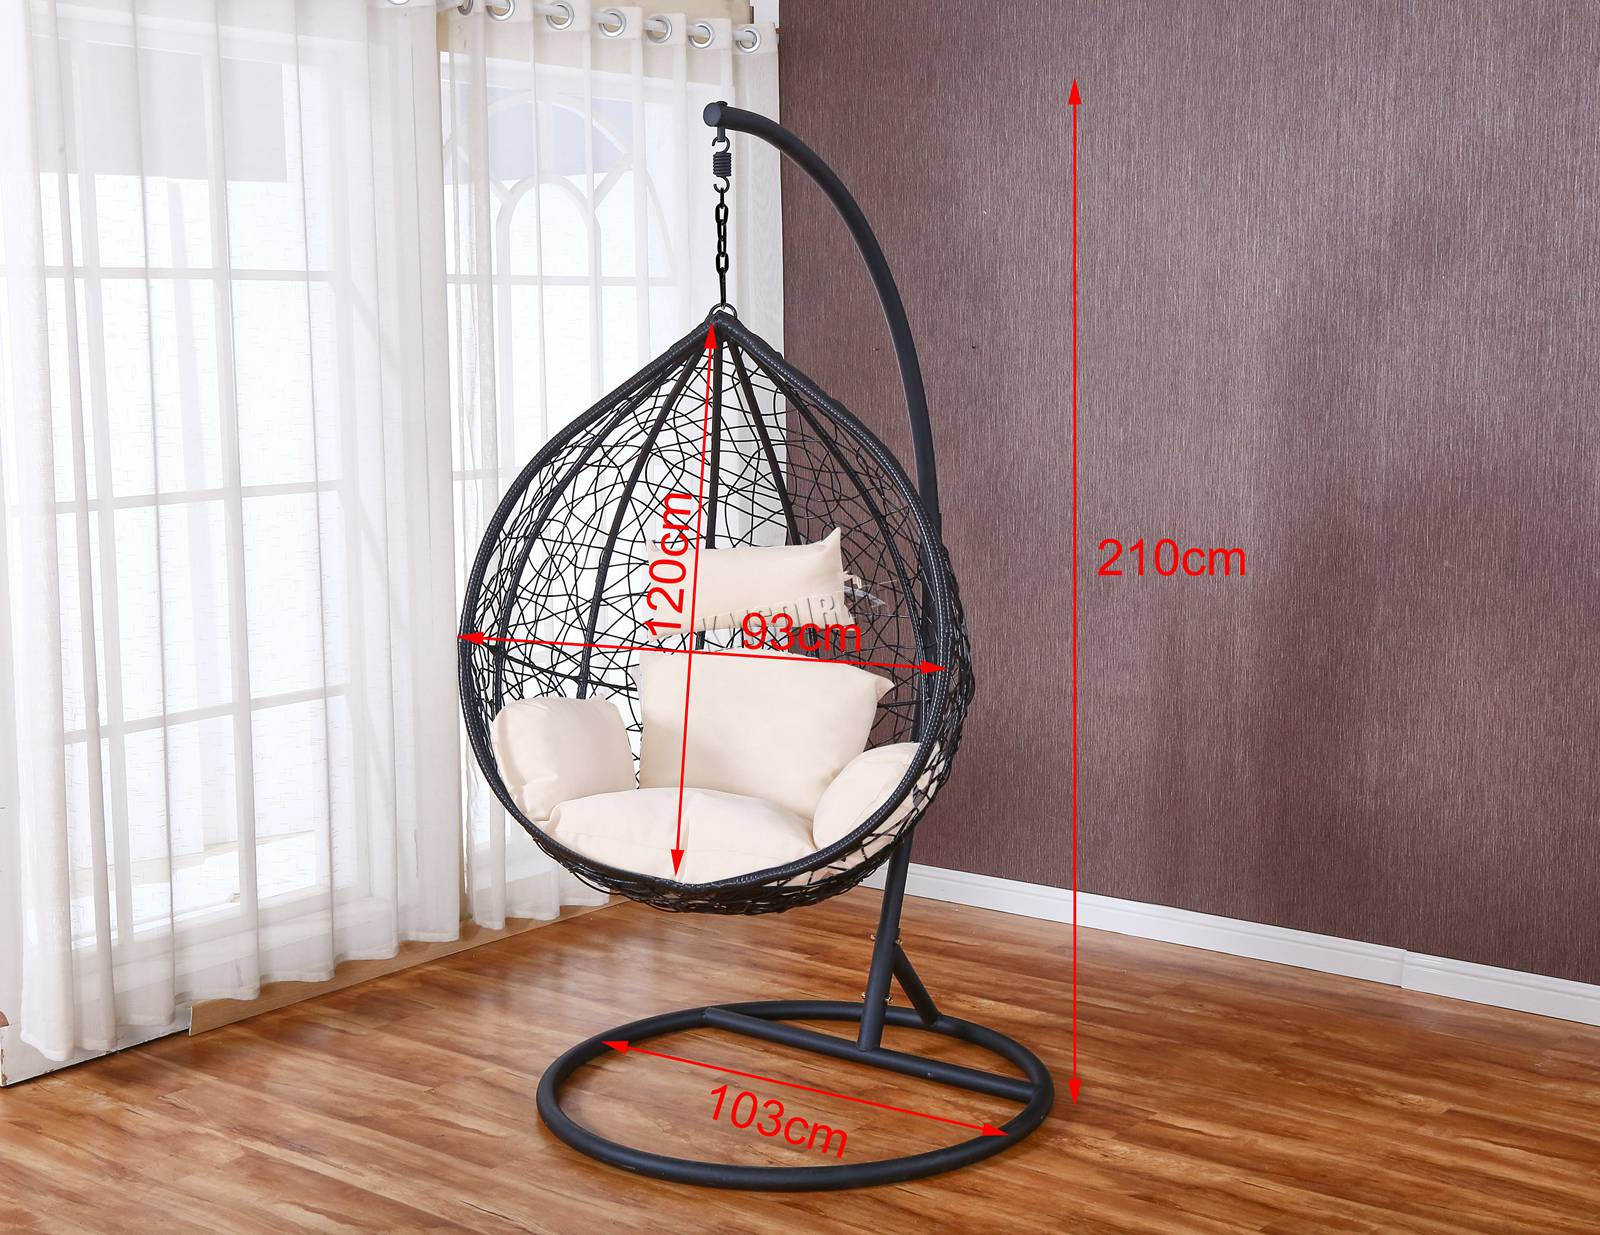 WestWood-Egg-Swing-Hanging-Chair-Hammock-Wave-With-Cushion-Rattan-Wicker-ESWR01 thumbnail 17